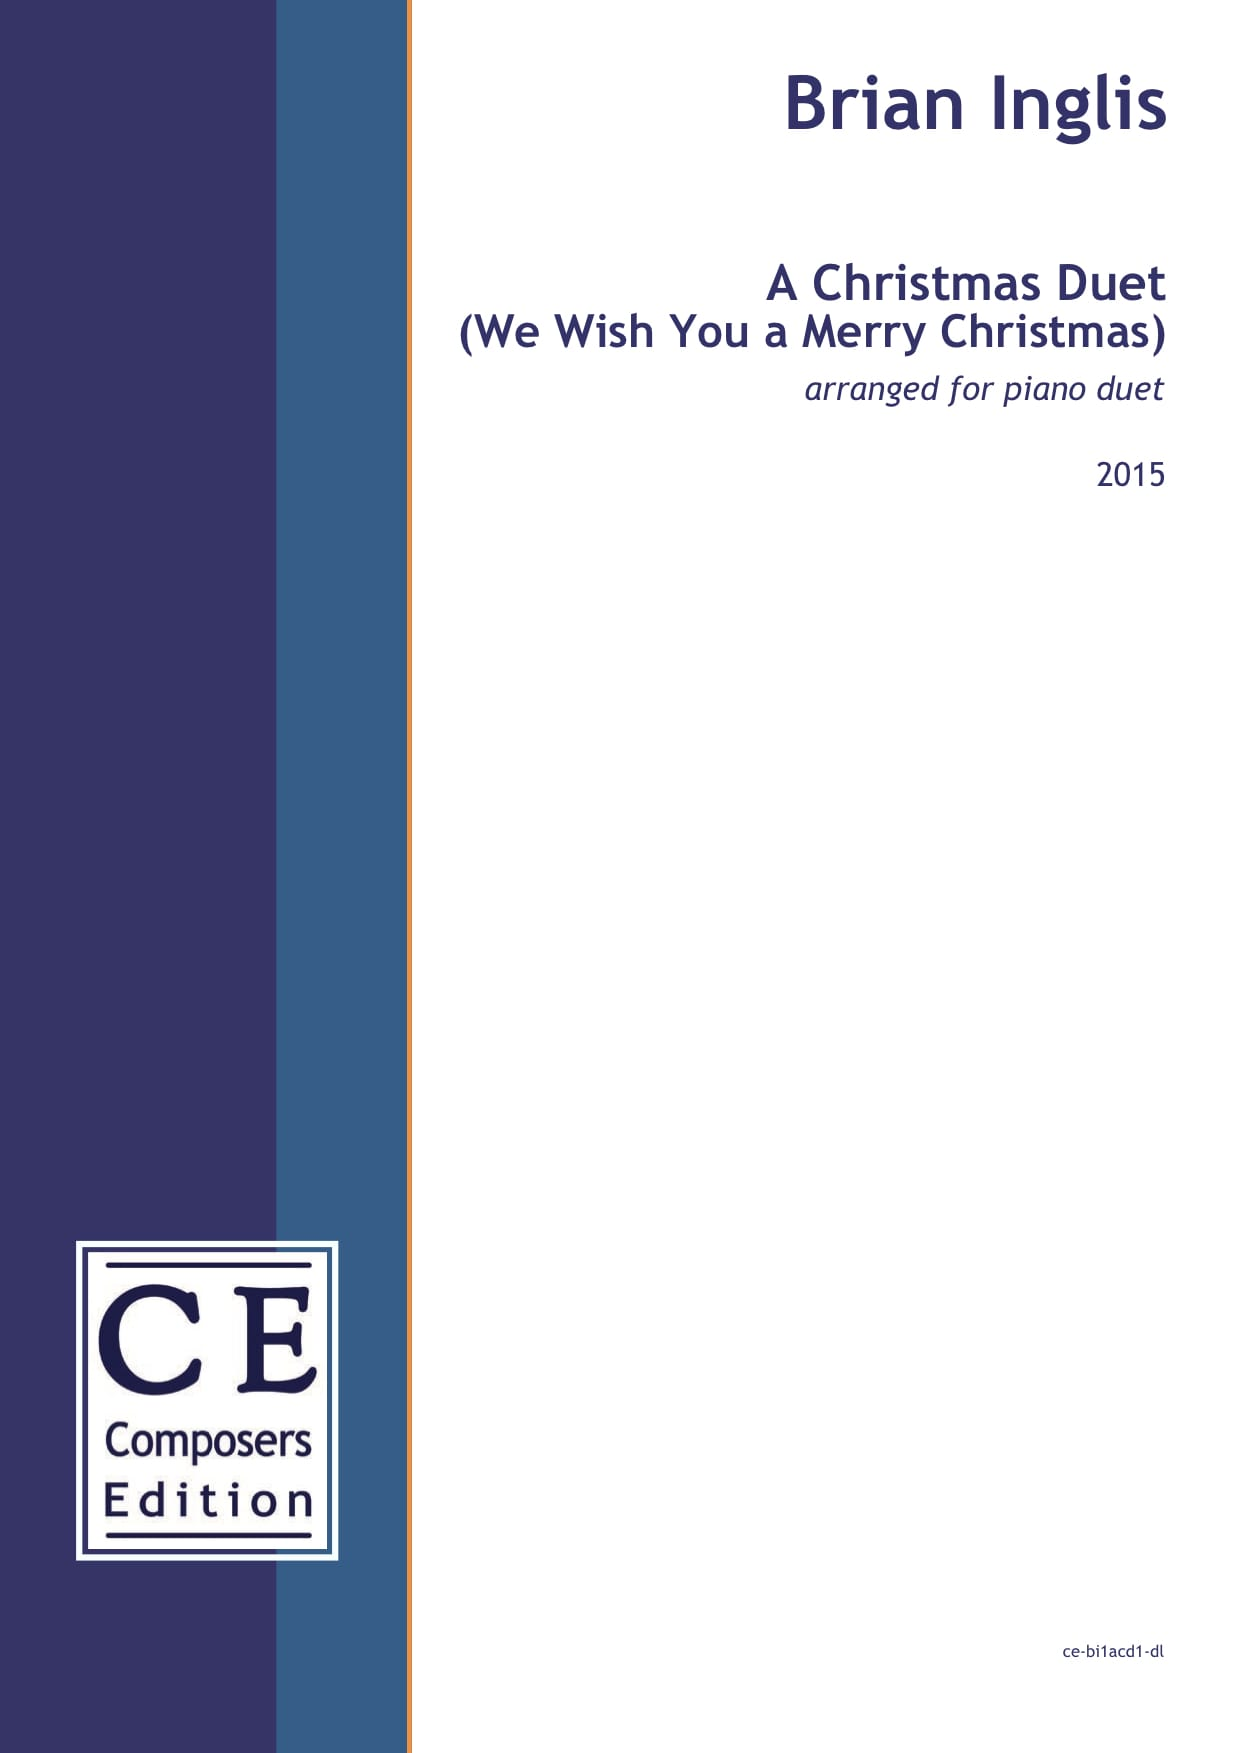 Brian Inglis: A Christmas Duet (We Wish You a Merry Christmas) arranged for piano duet